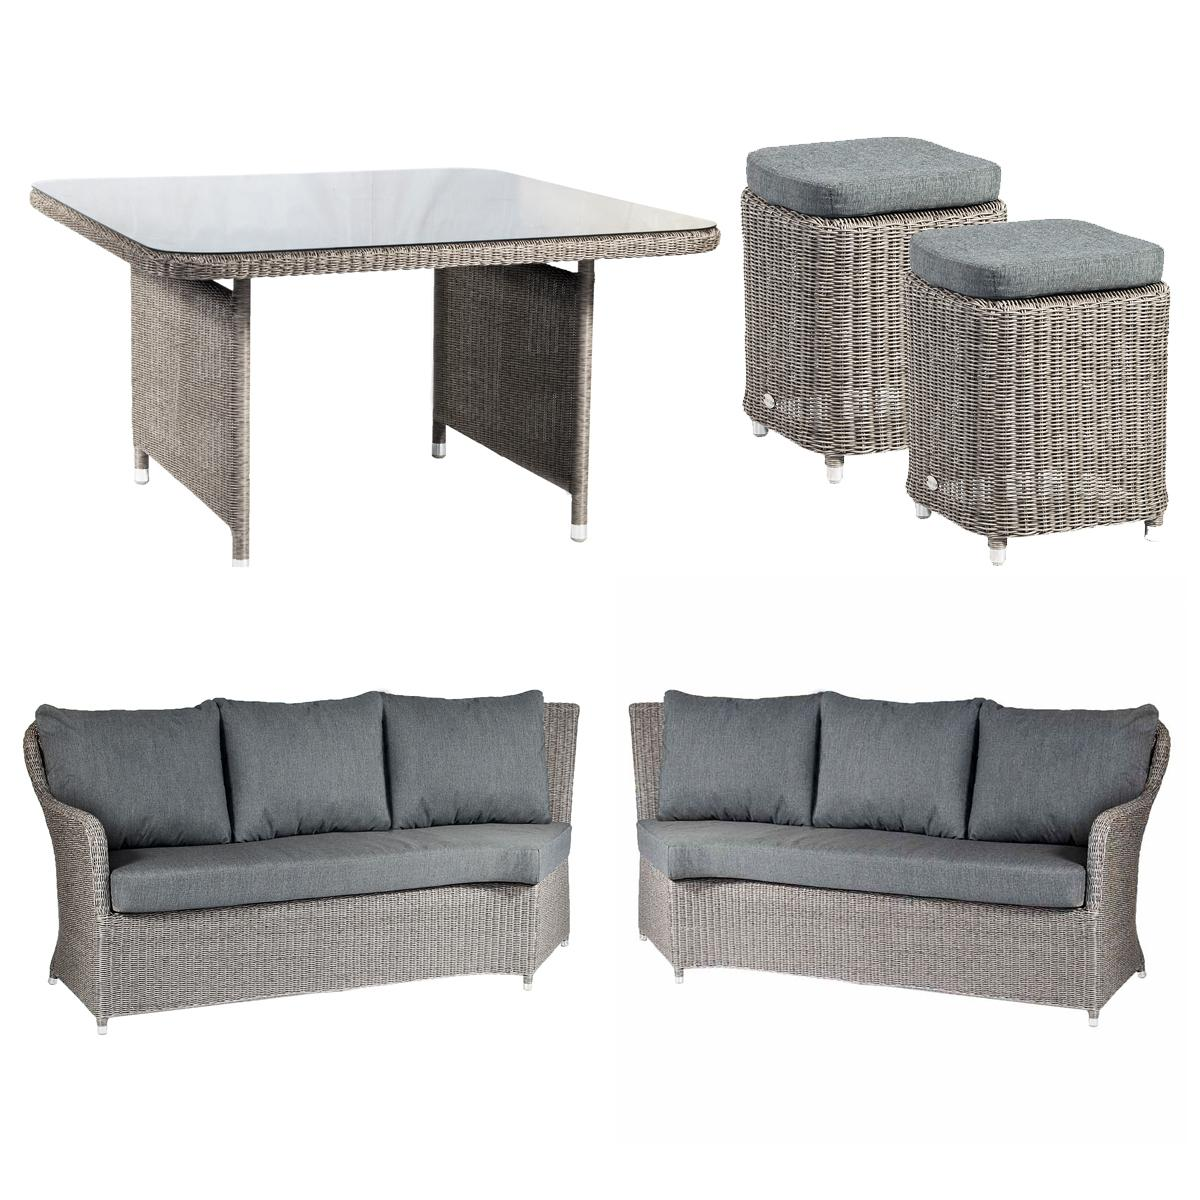 Monte Carlo Casual Dining Set View The Full Image